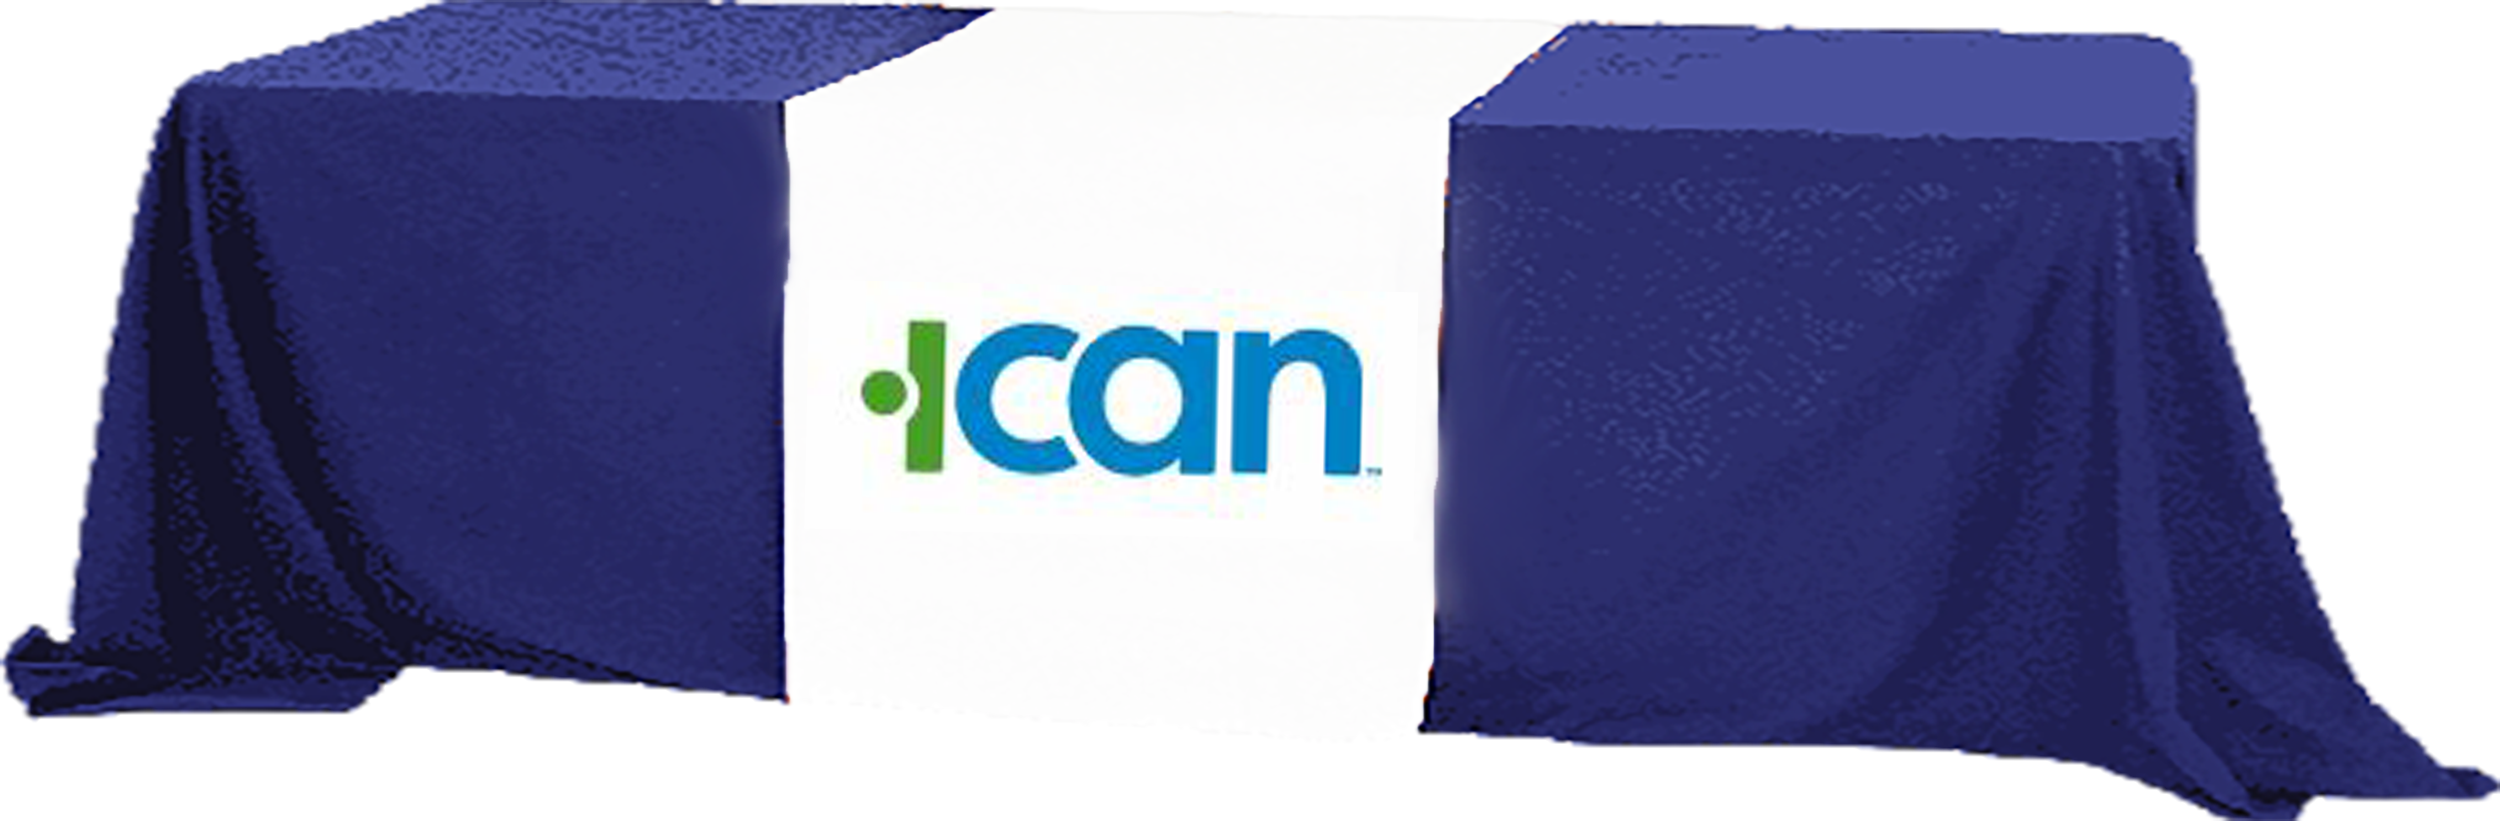 ICAN  logo on a table cover over a table image